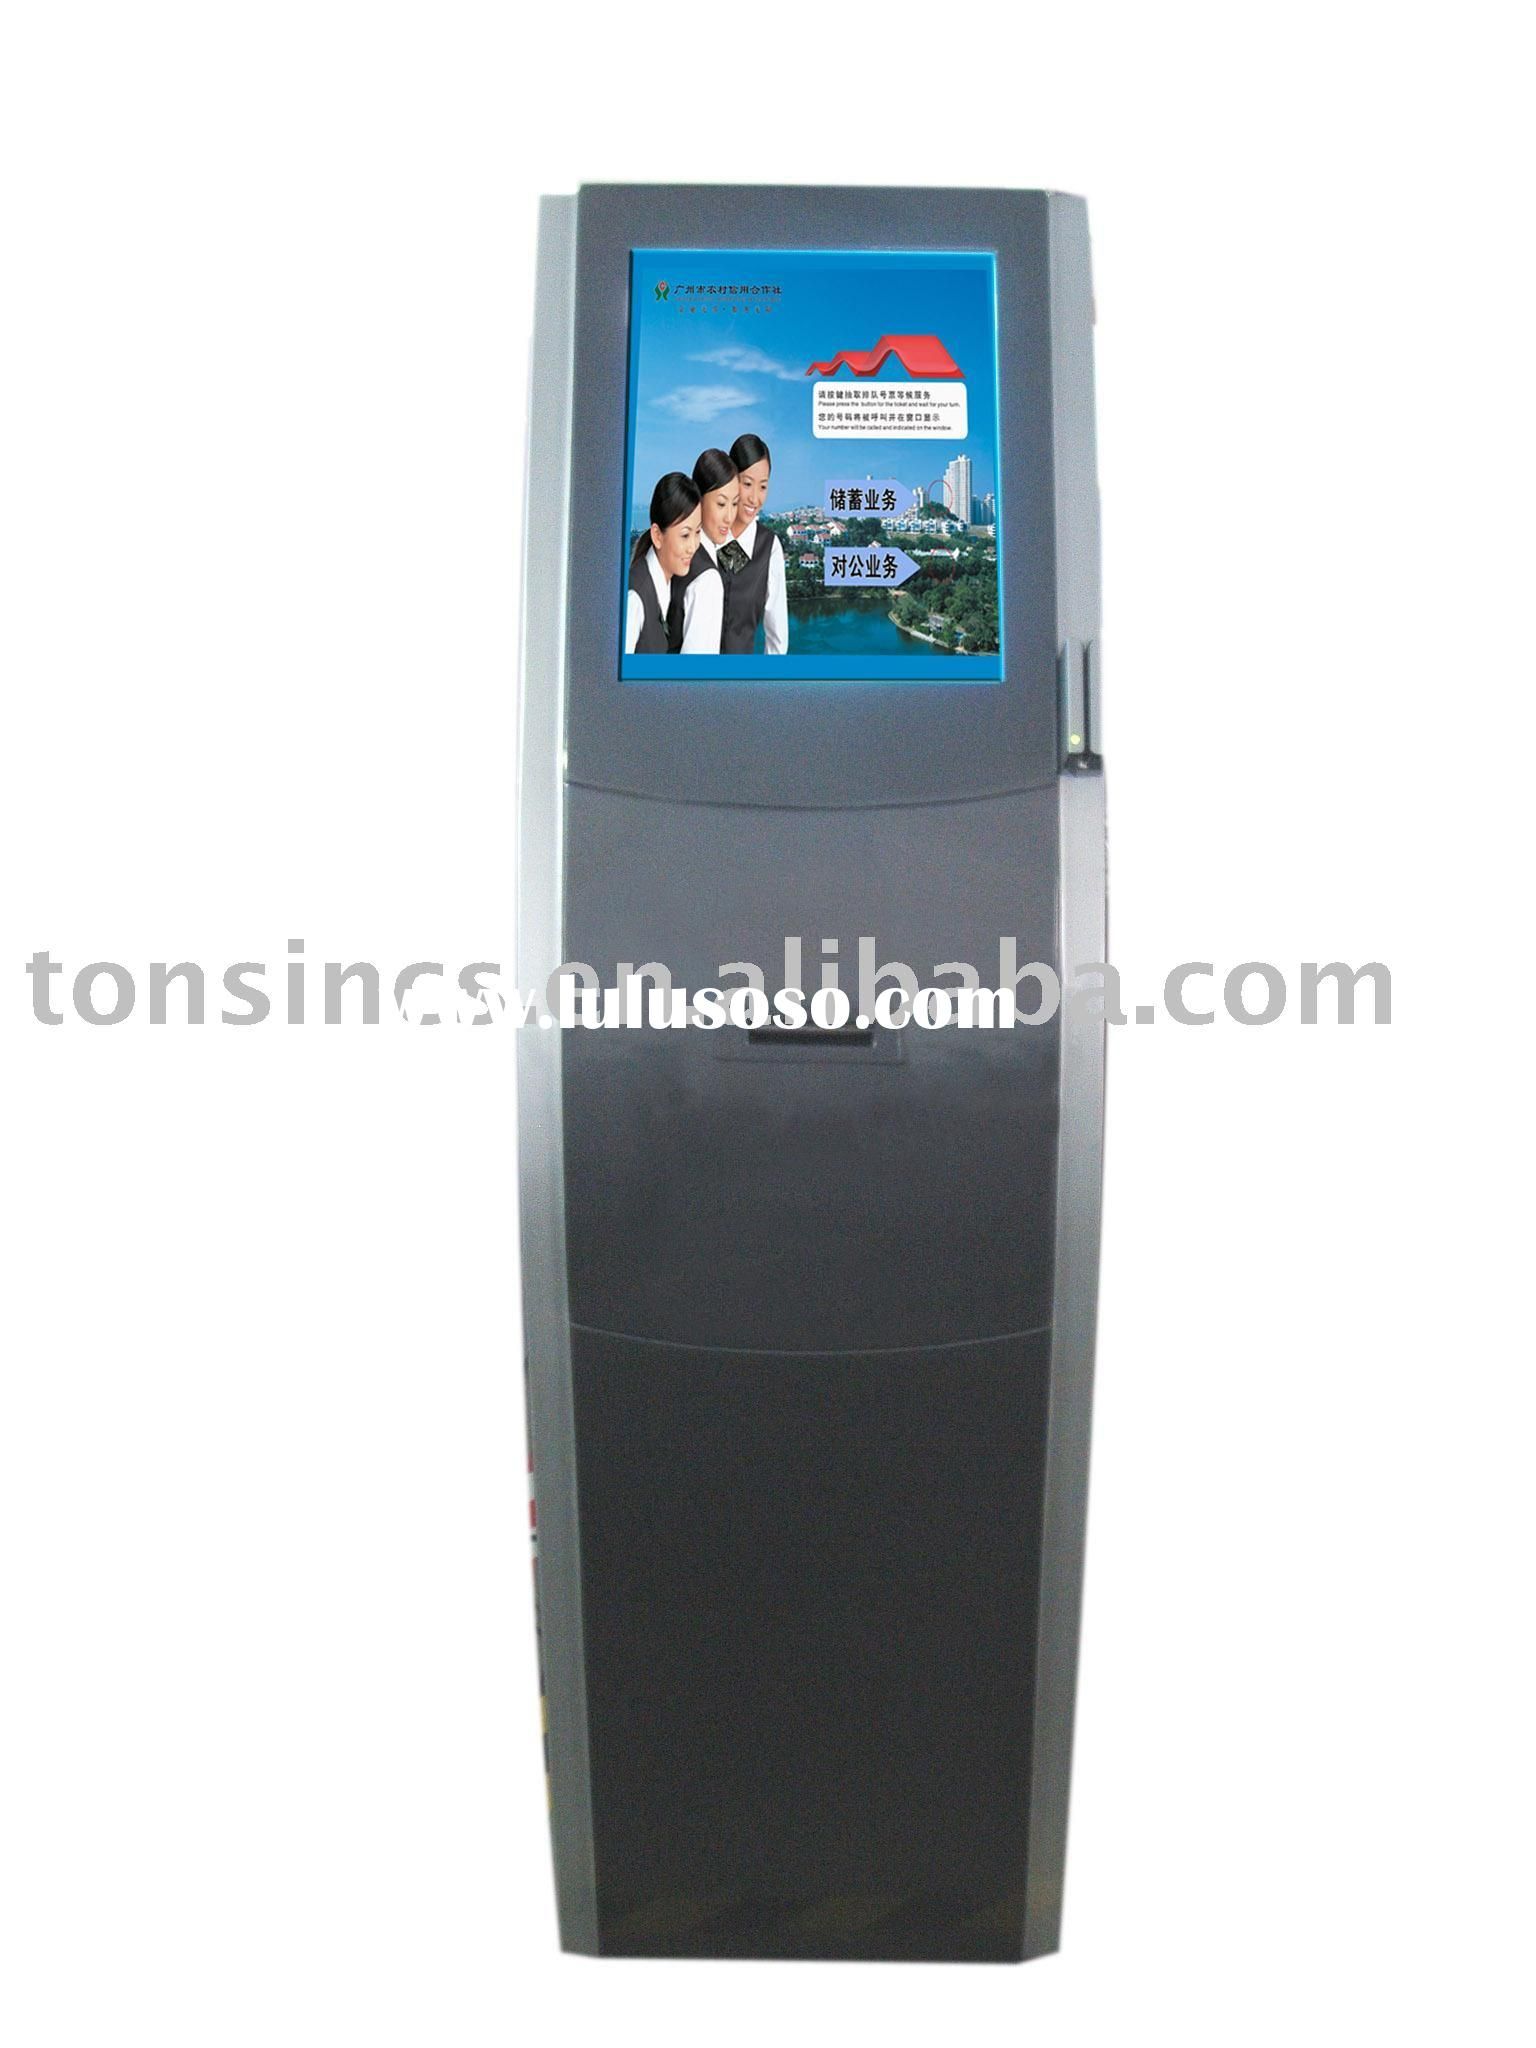 Guangzhou Internet Bank/Shopping Mall/etc Payment and Information Touch Kiosk